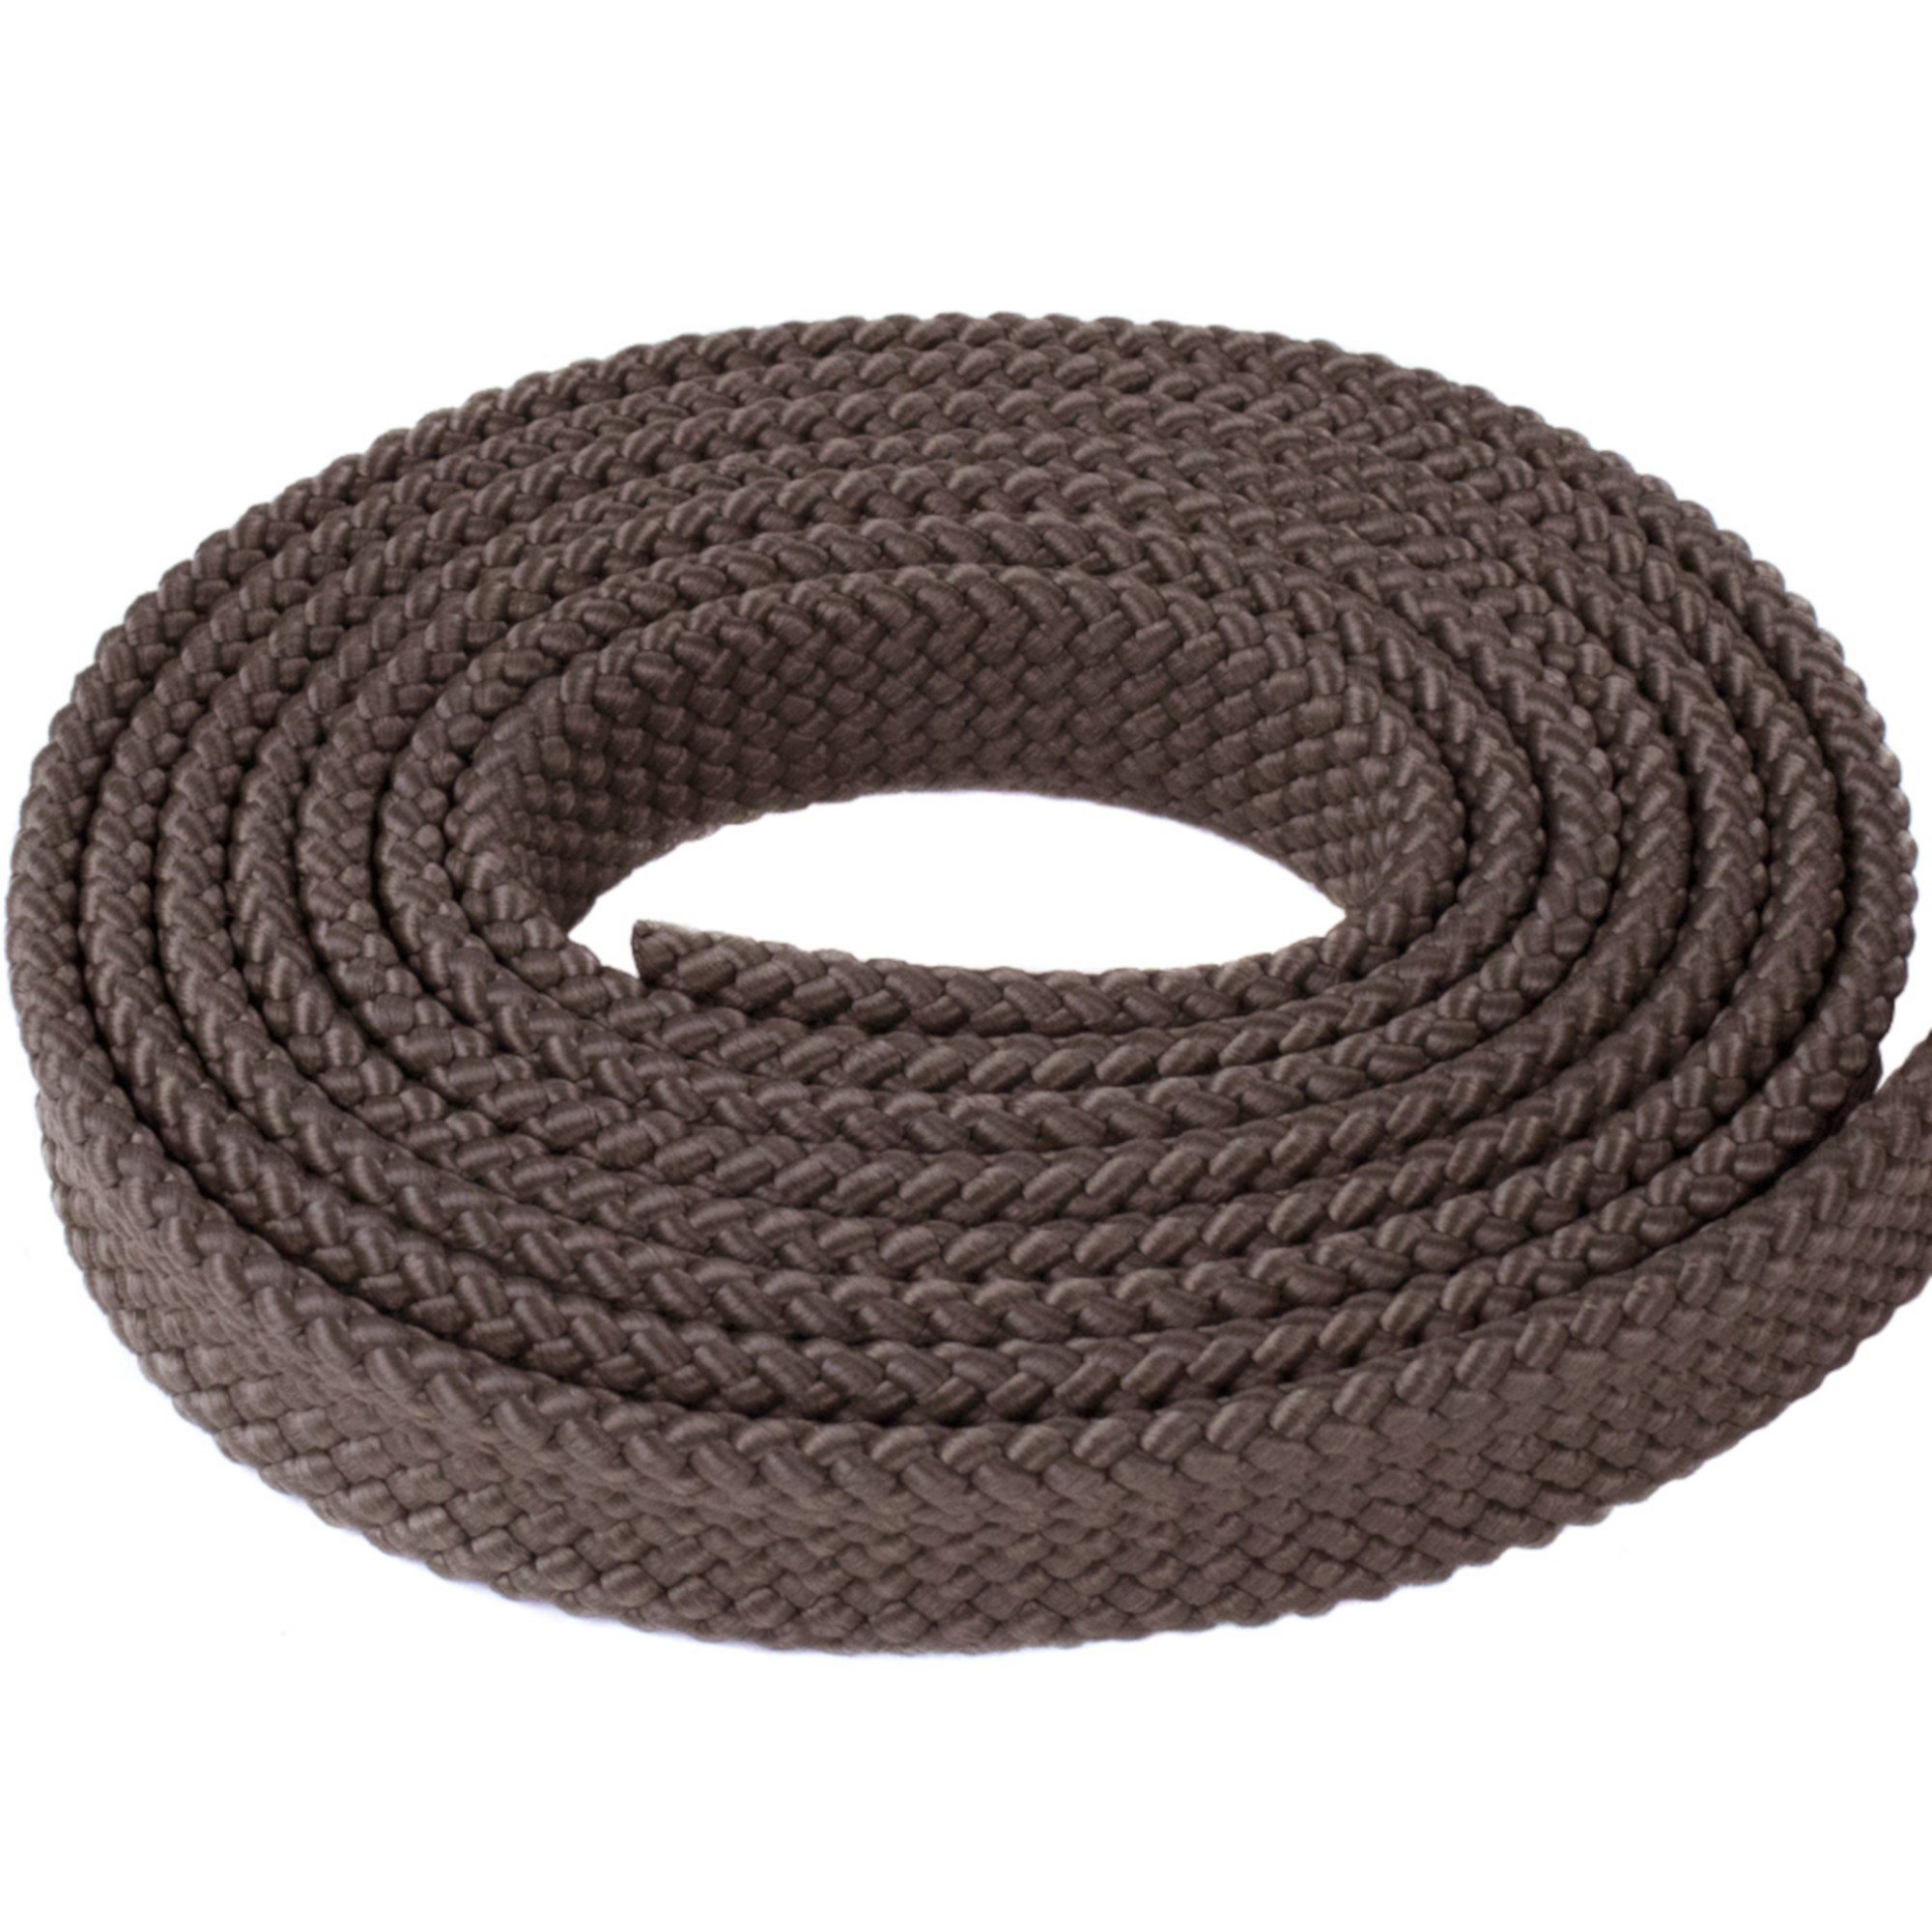 "PolyPro Soft 1"" MFP Hollow Flat Braid Rope - Multiple Colors and Lengths - Easy to Splice and Seal"